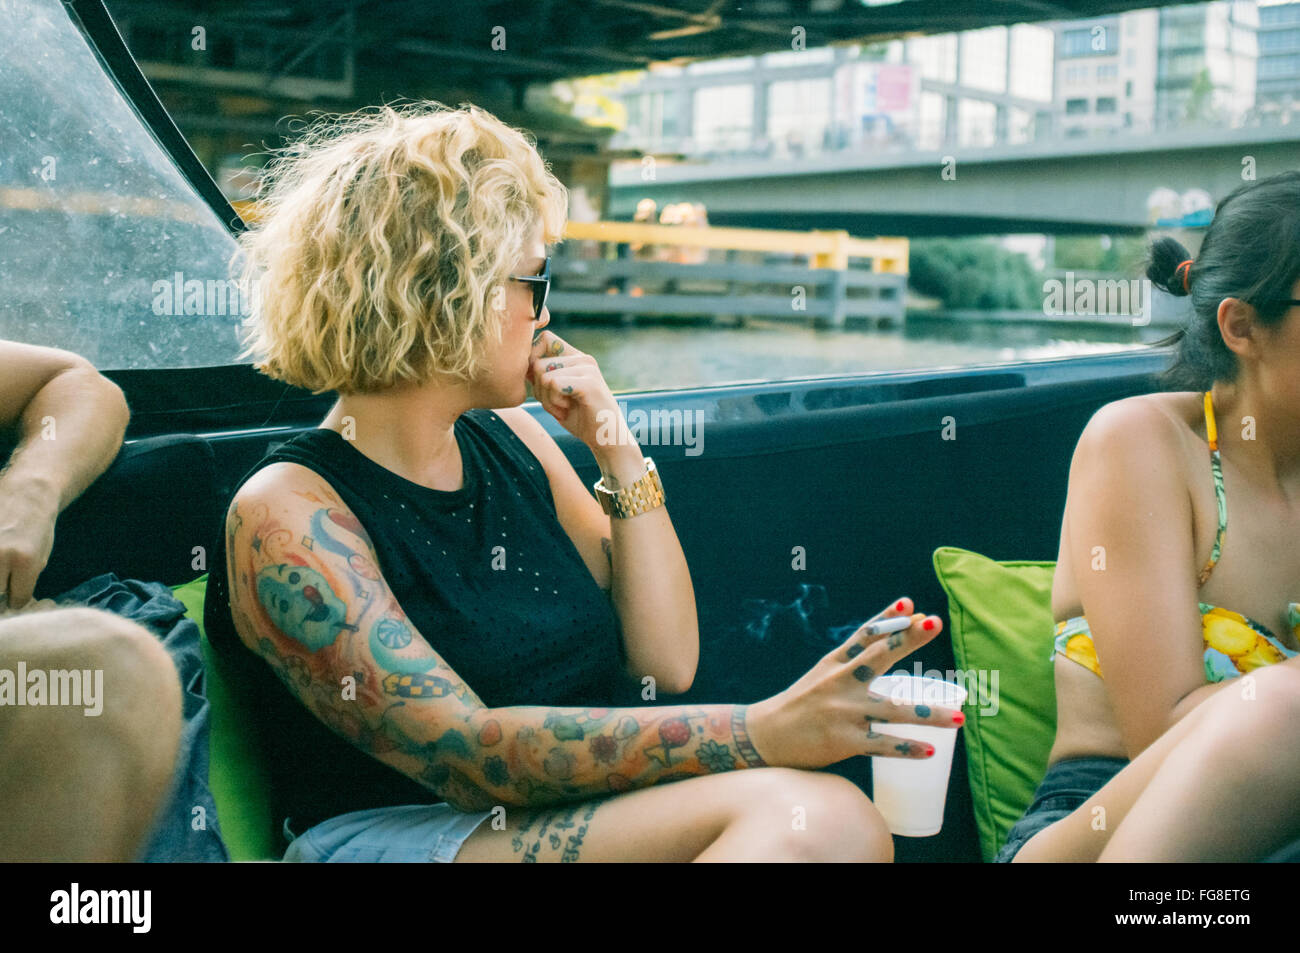 Women Sitting And Enjoying In Boat At River - Stock Image